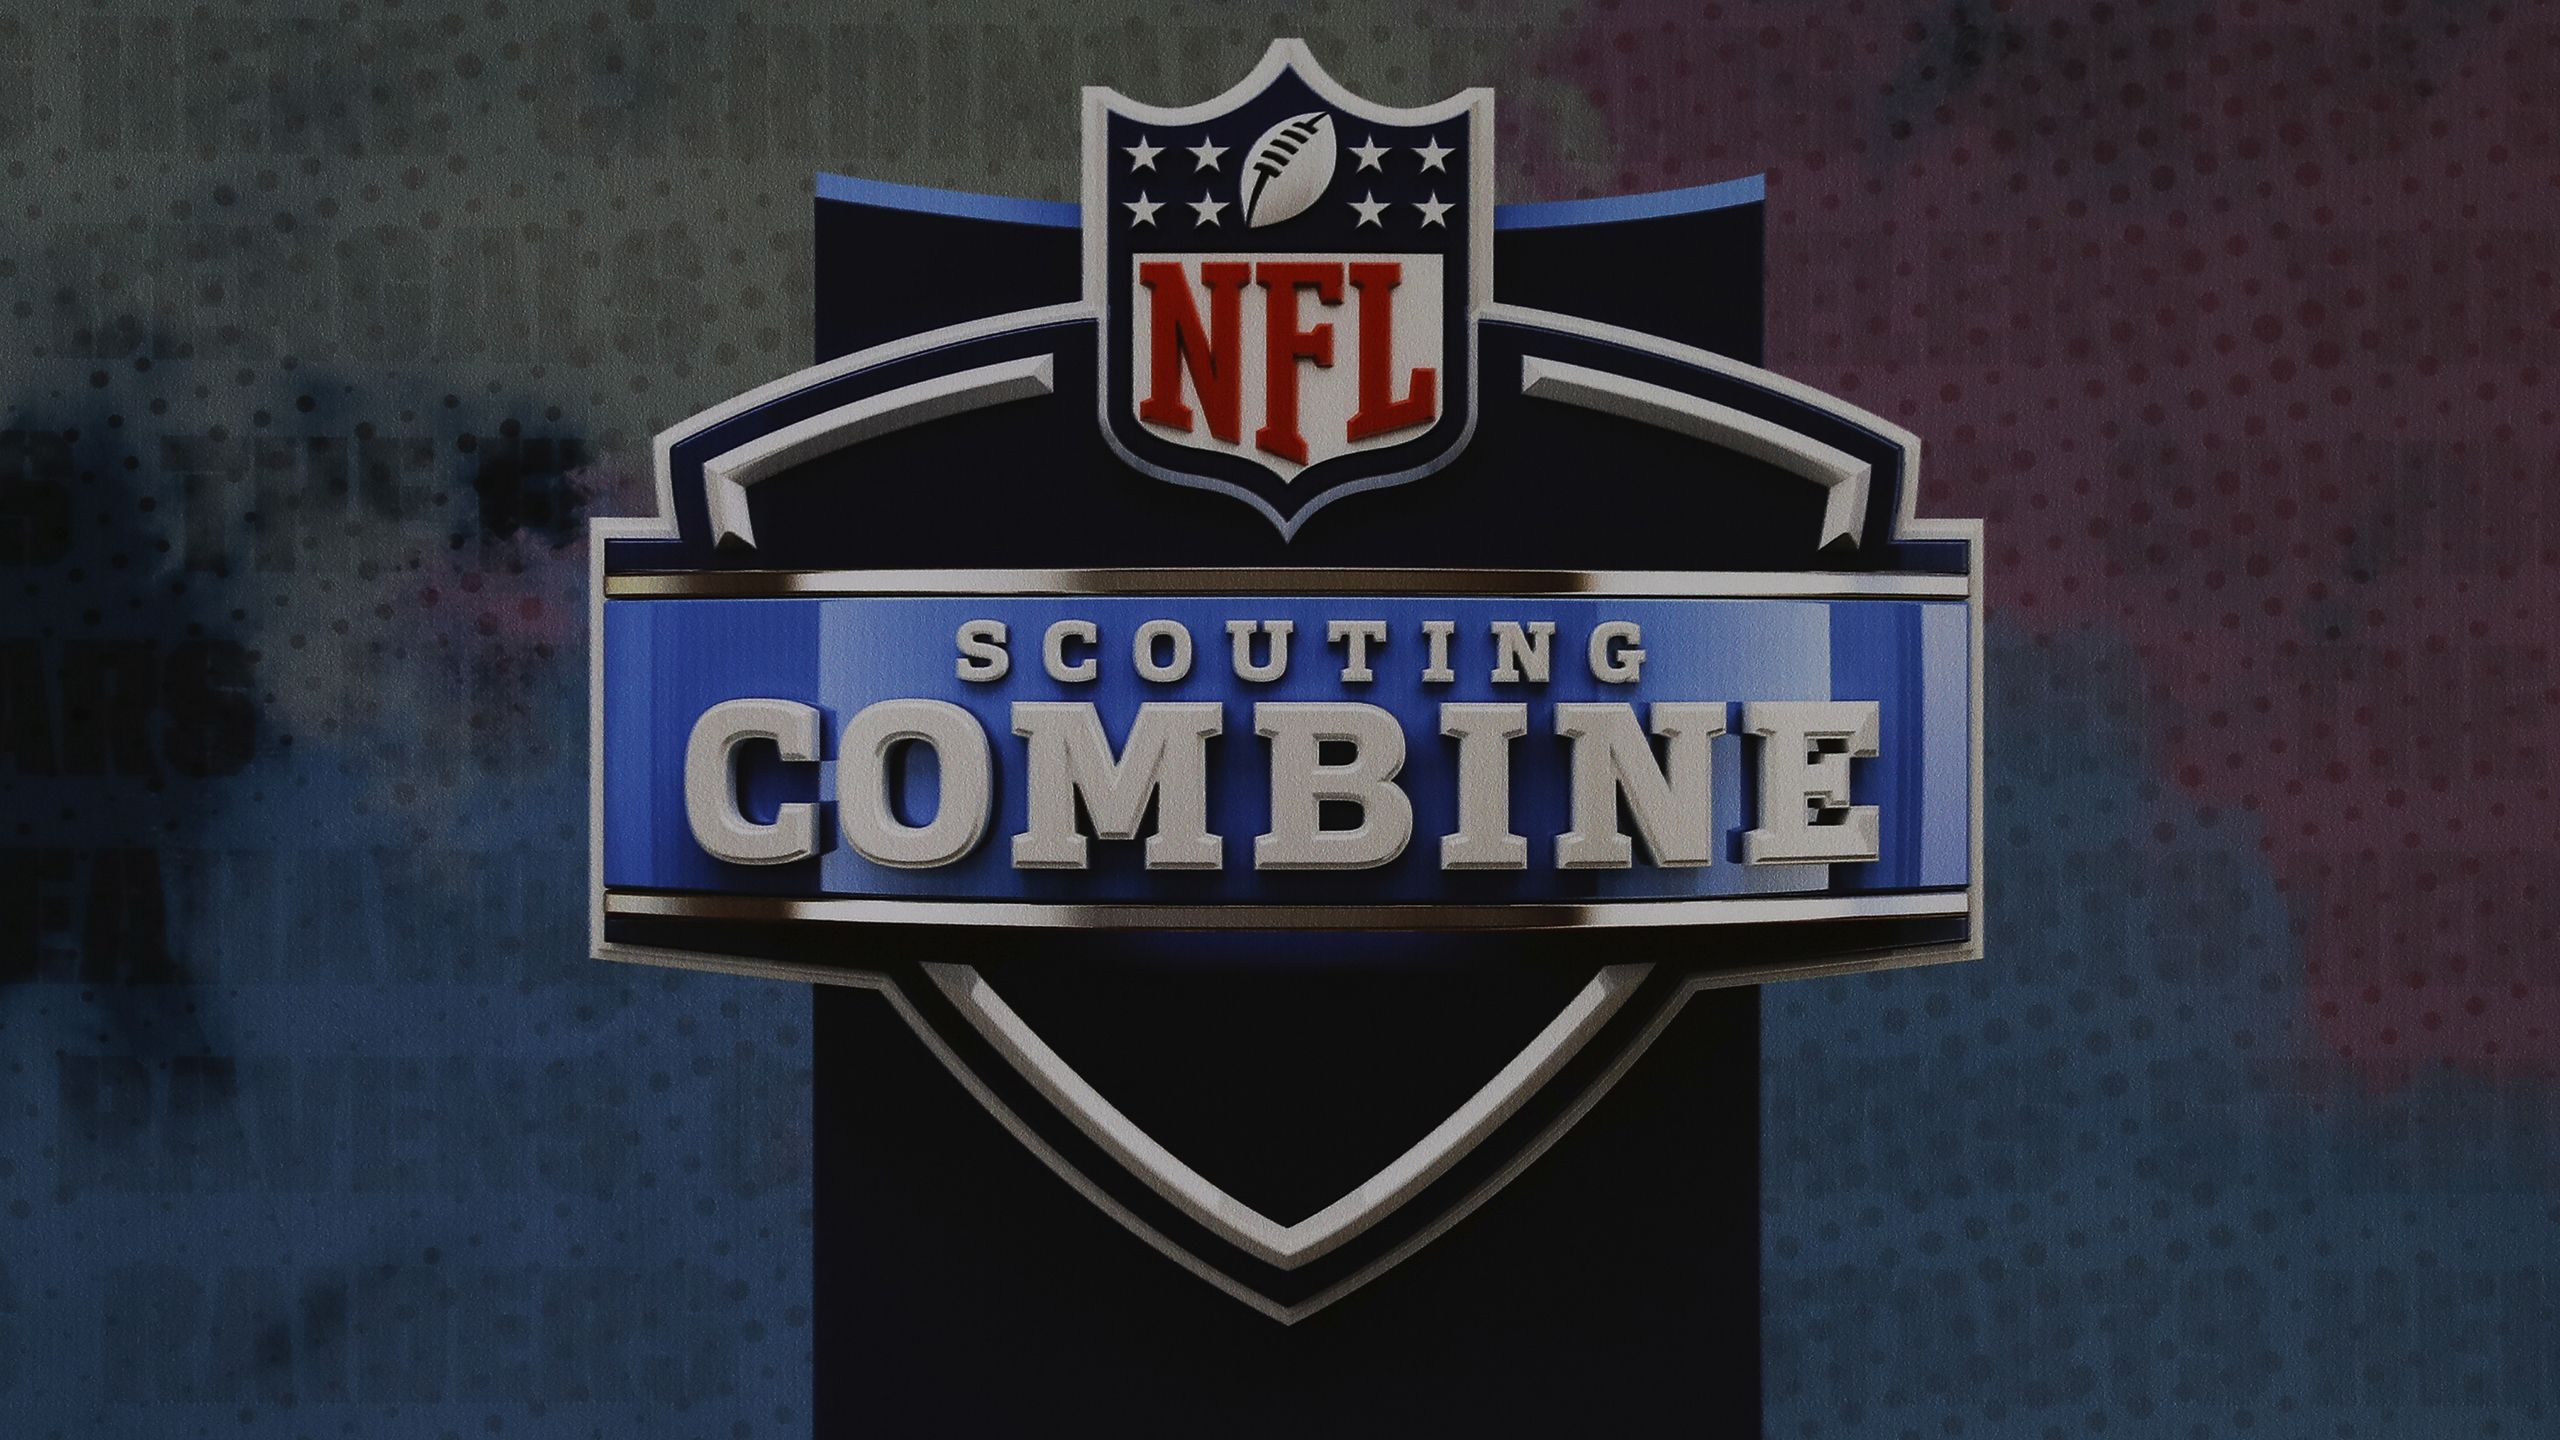 About The 2020 NFL Combine